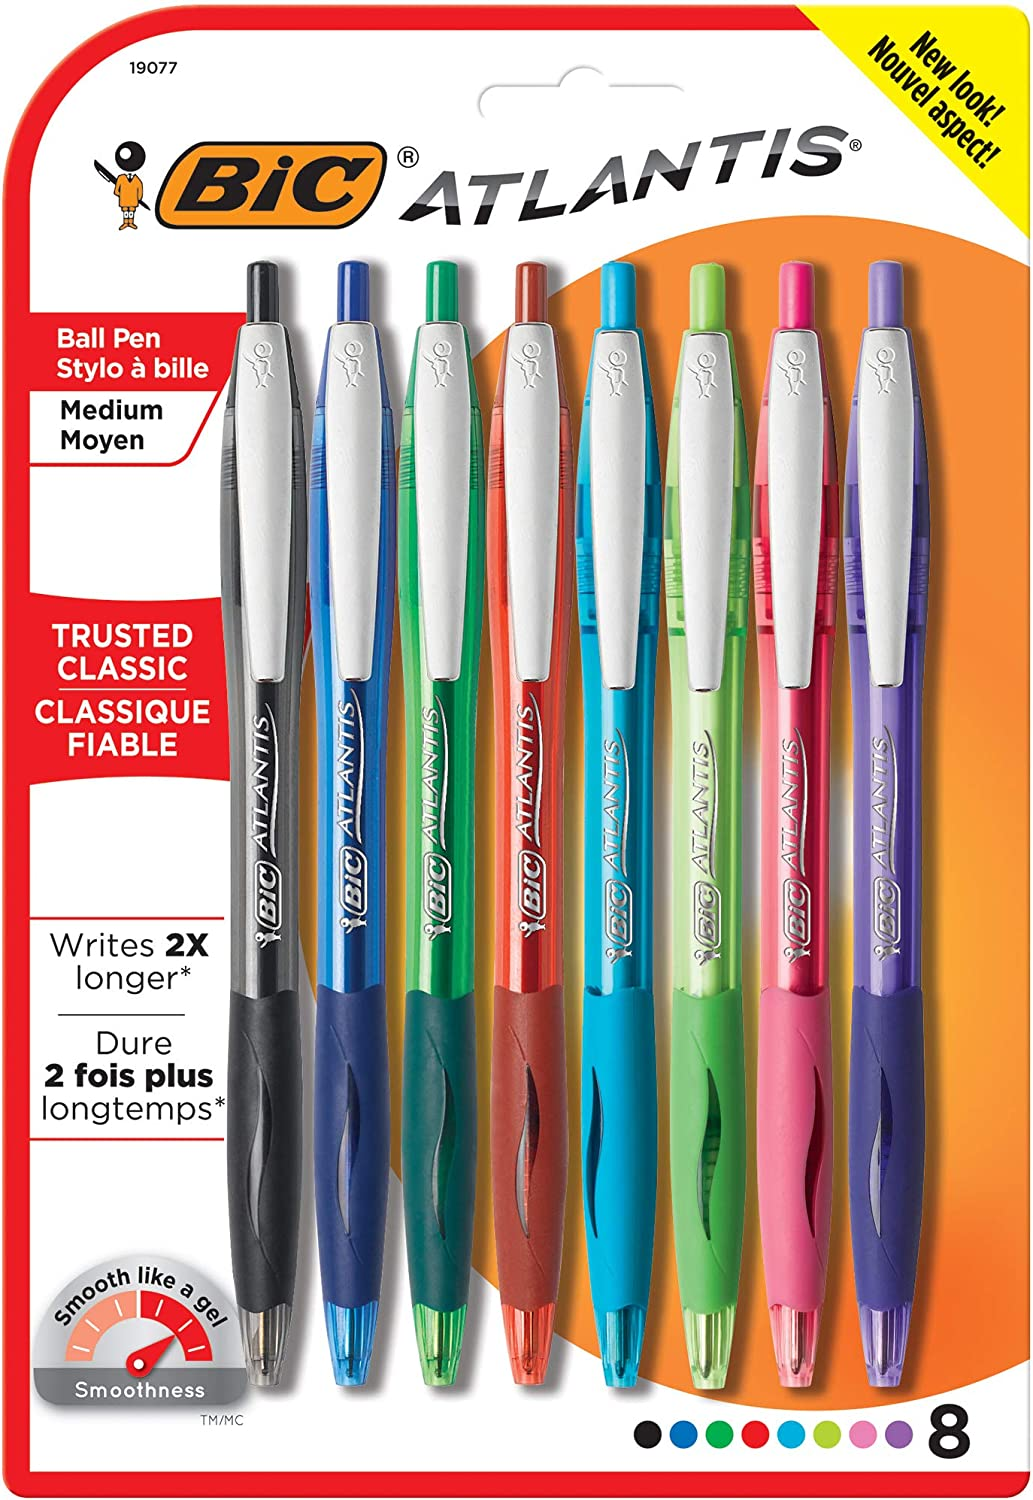 BIC Atlantis Original Retractable Ballpoint Pens 8//Pkg-Assorted